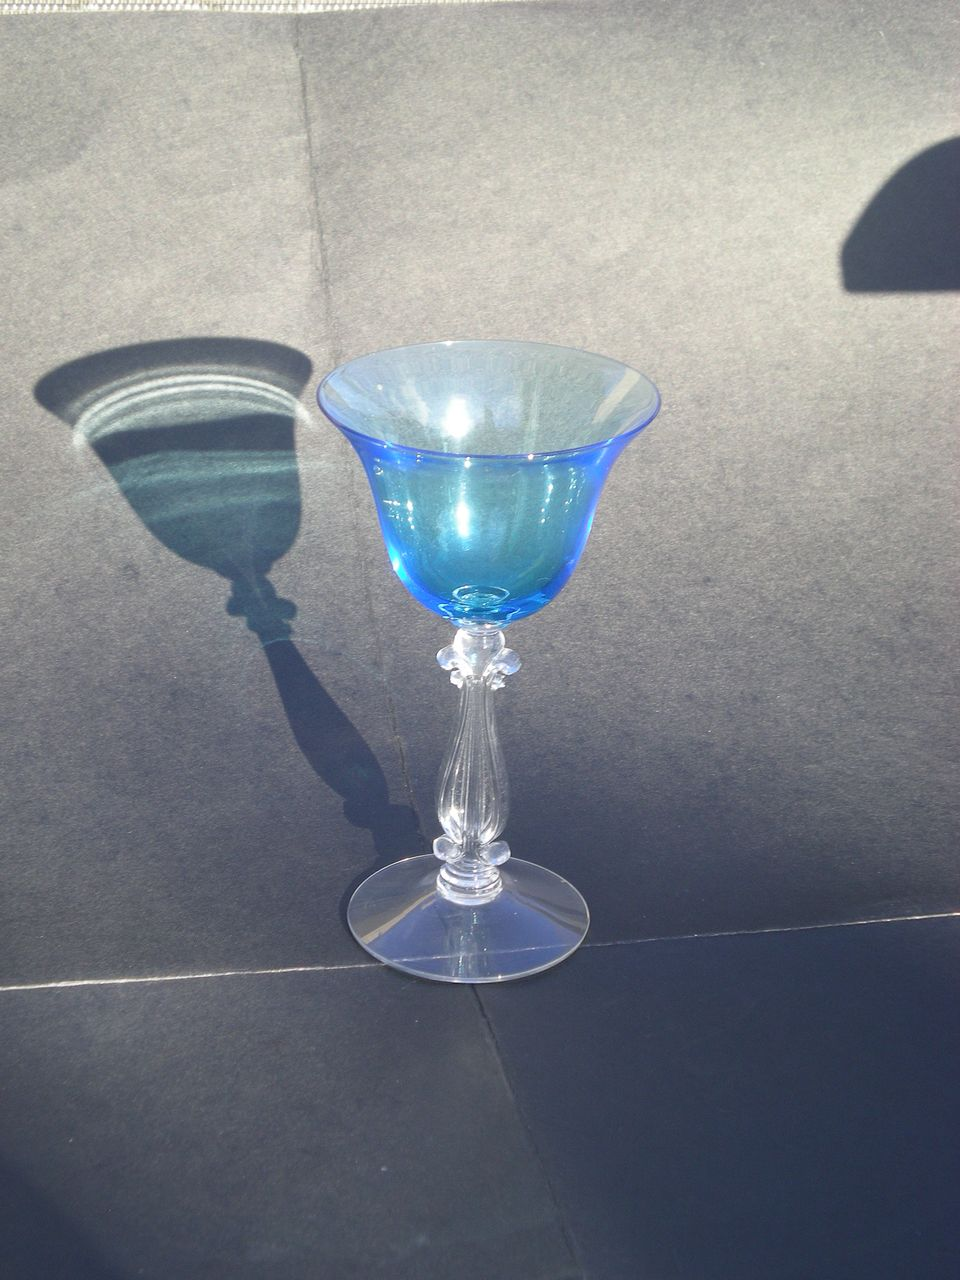 Cambridge Pretty Bright Blue Elegant Depression Glass &quot;Stradivari&quot; stem